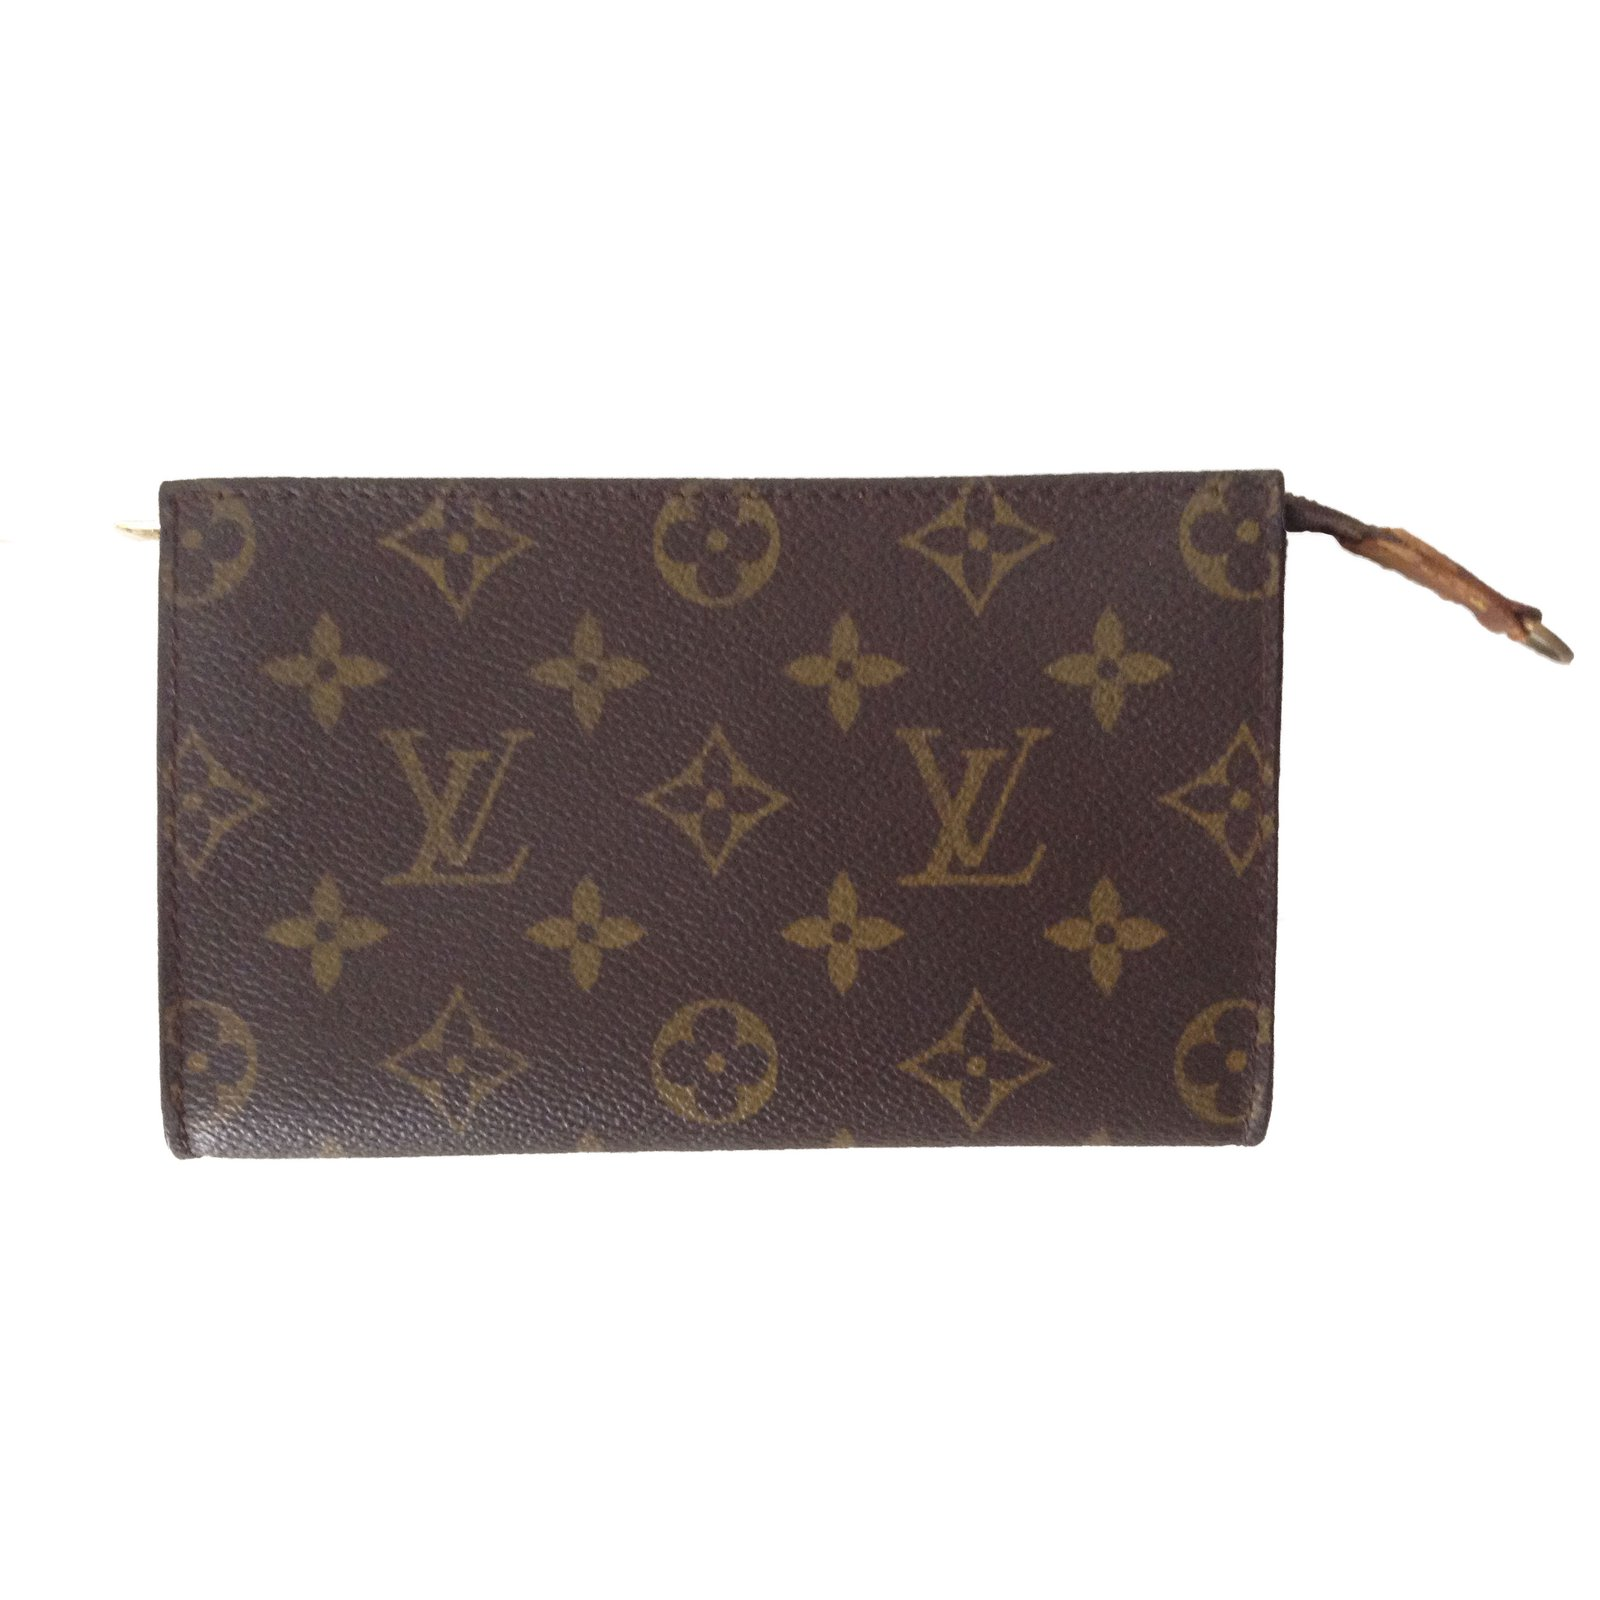 louis vuitton clutch bag. louis vuitton clutch bag bags leather brown ref.39576